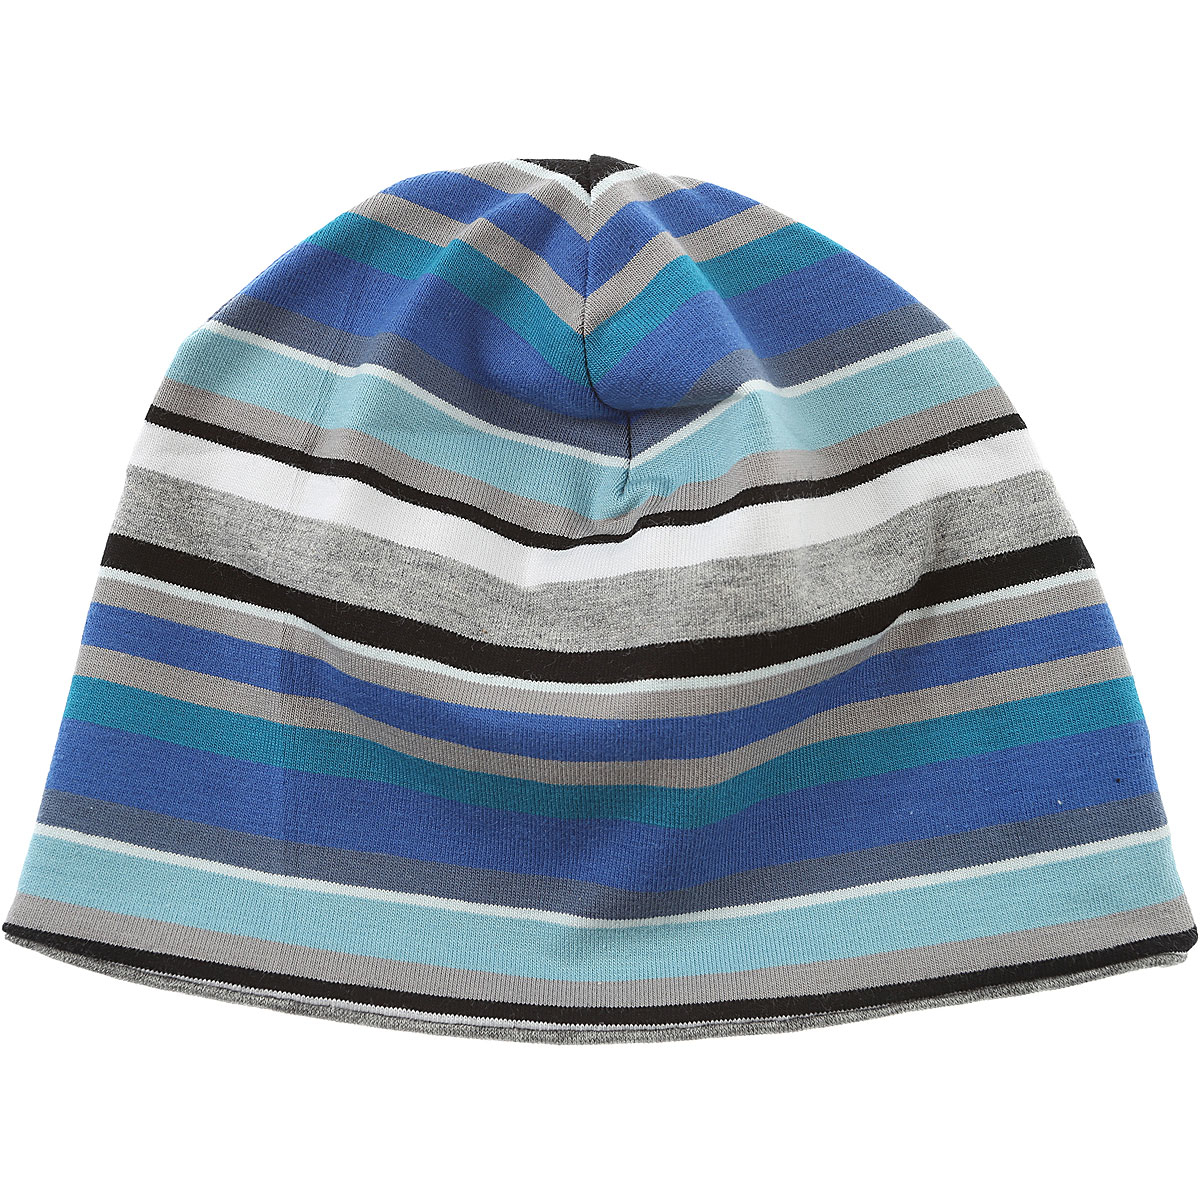 Gallo Baby Hats for Boys On Sale in Outlet Blue DK - GOOFASH - Mens HATS